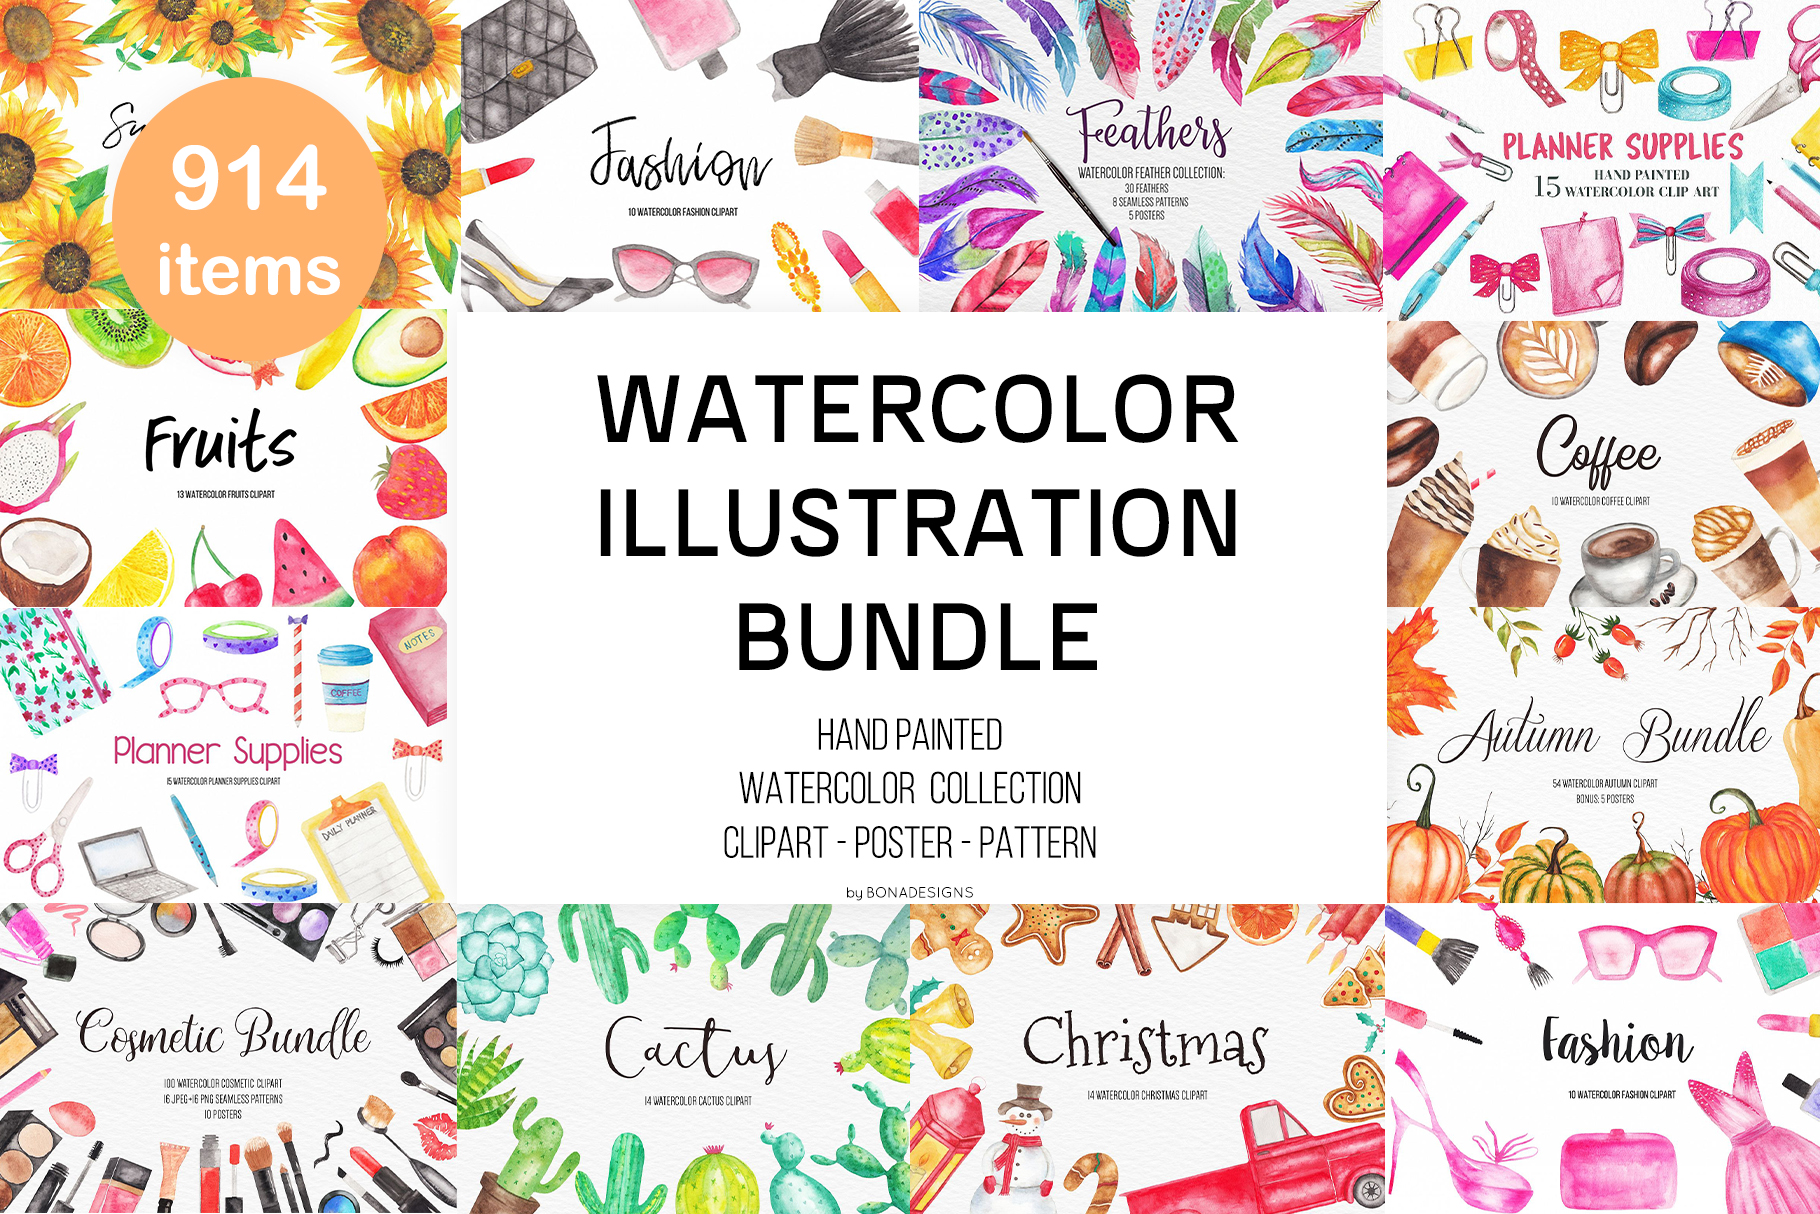 Download Free Watercolor Illustration Clipart Bundle Graphic By Bonadesigns for Cricut Explore, Silhouette and other cutting machines.